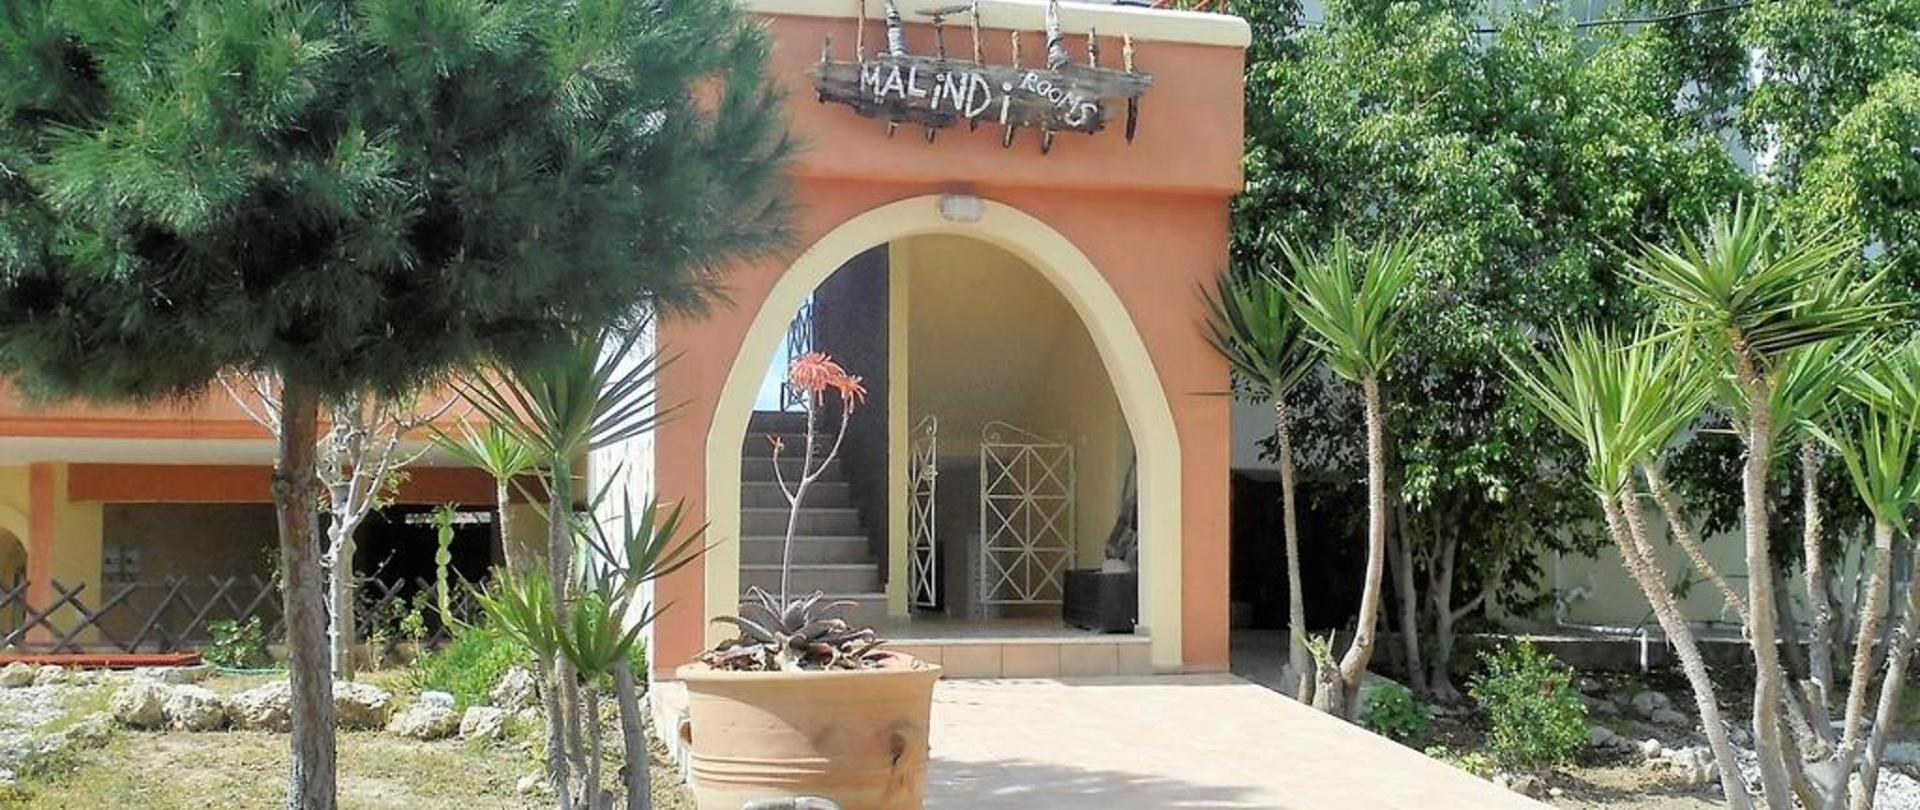 Malindi Rooms entrance